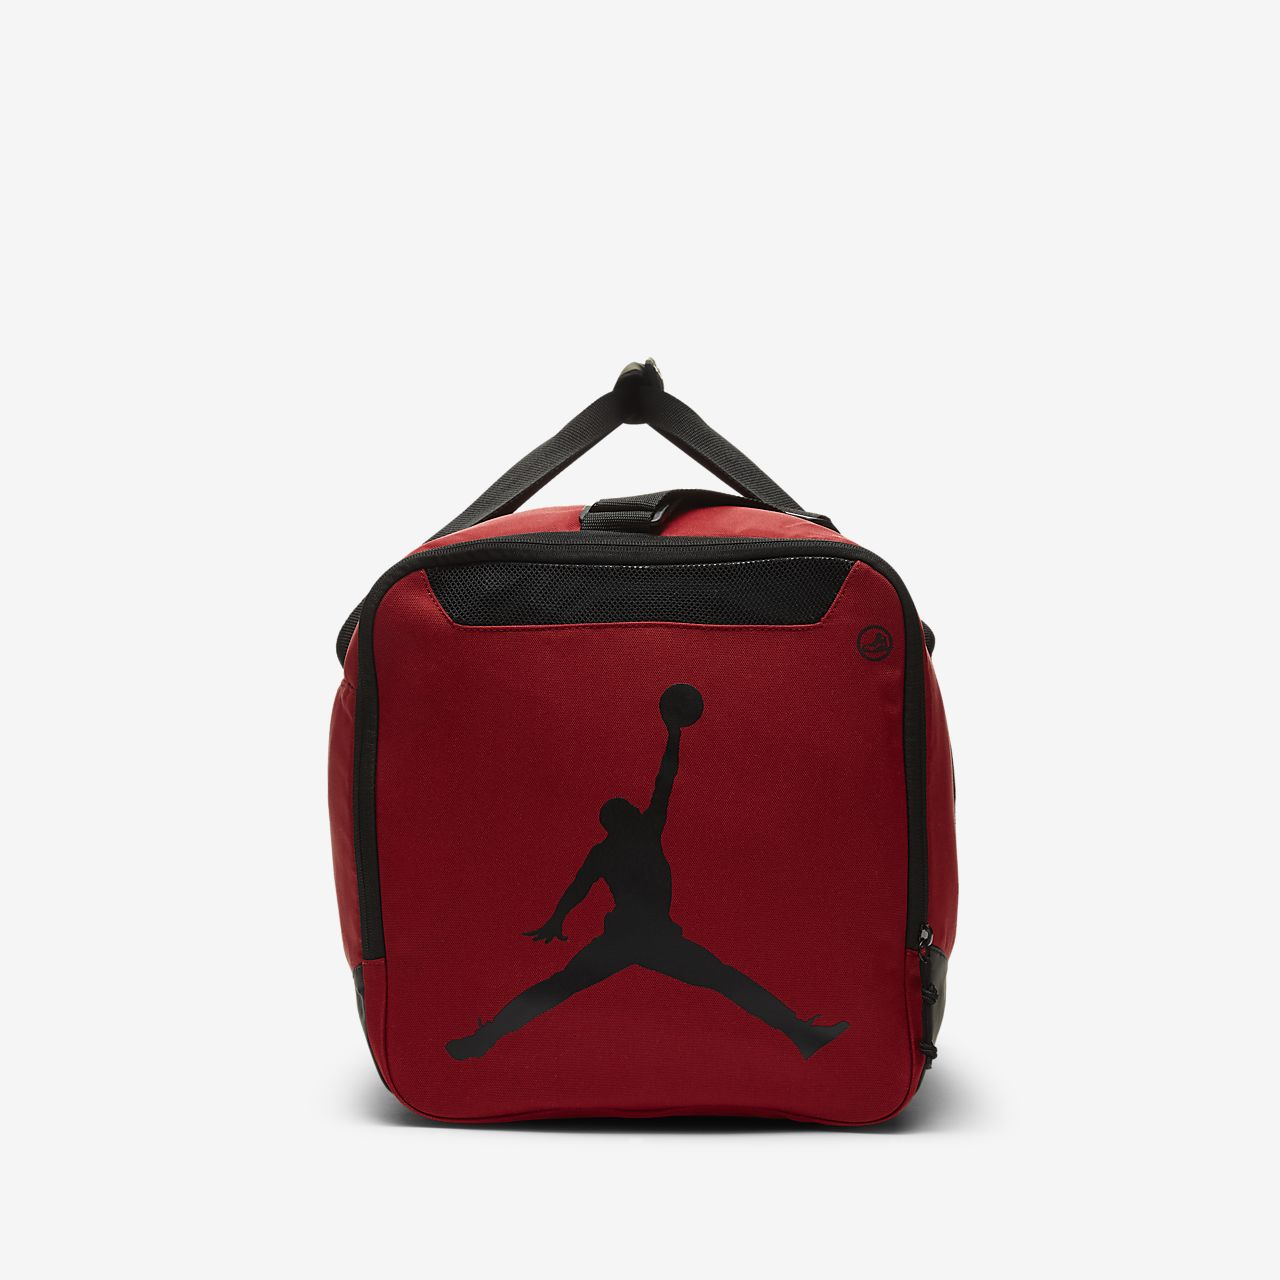 47d61c35cd4 Low Resolution Jordan Jumpman Duffel Bag Jordan Jumpman Duffel Bag